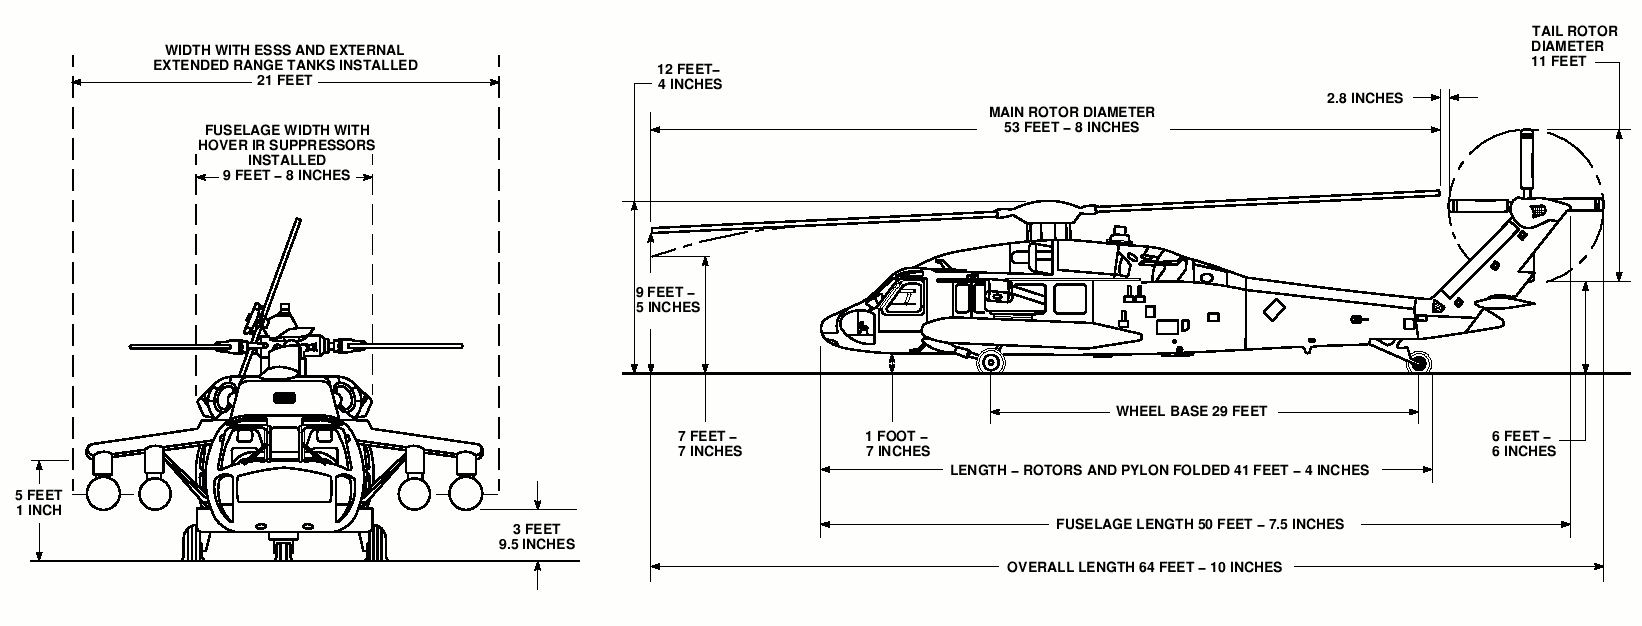 hight resolution of uh 60 black hawk dimensions